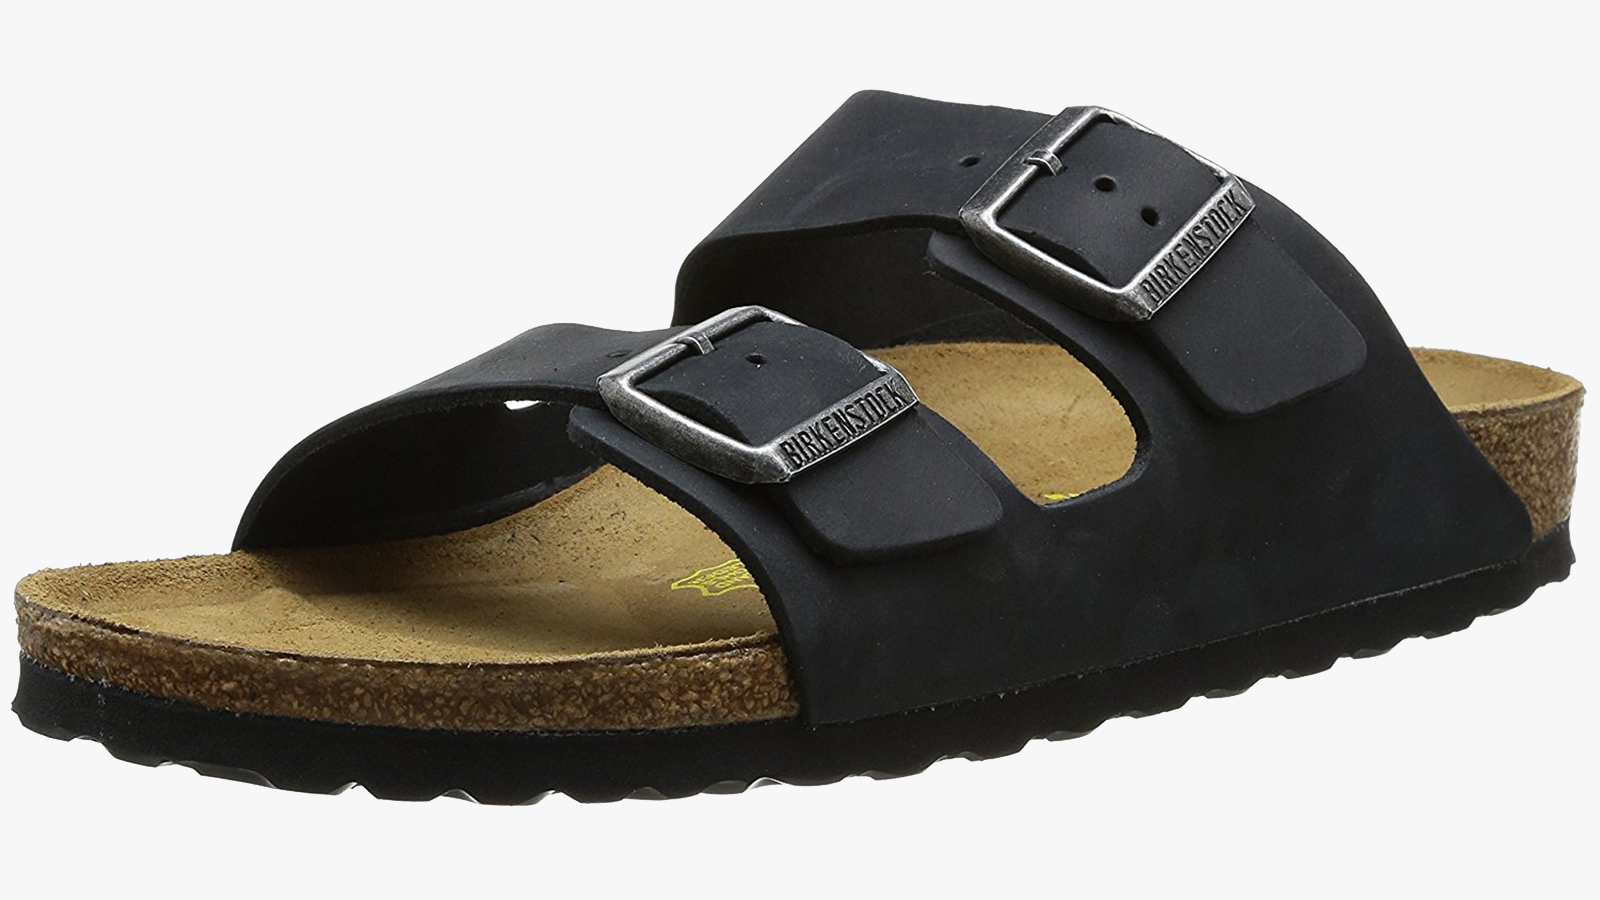 Birkenstocks Best Men's Slides